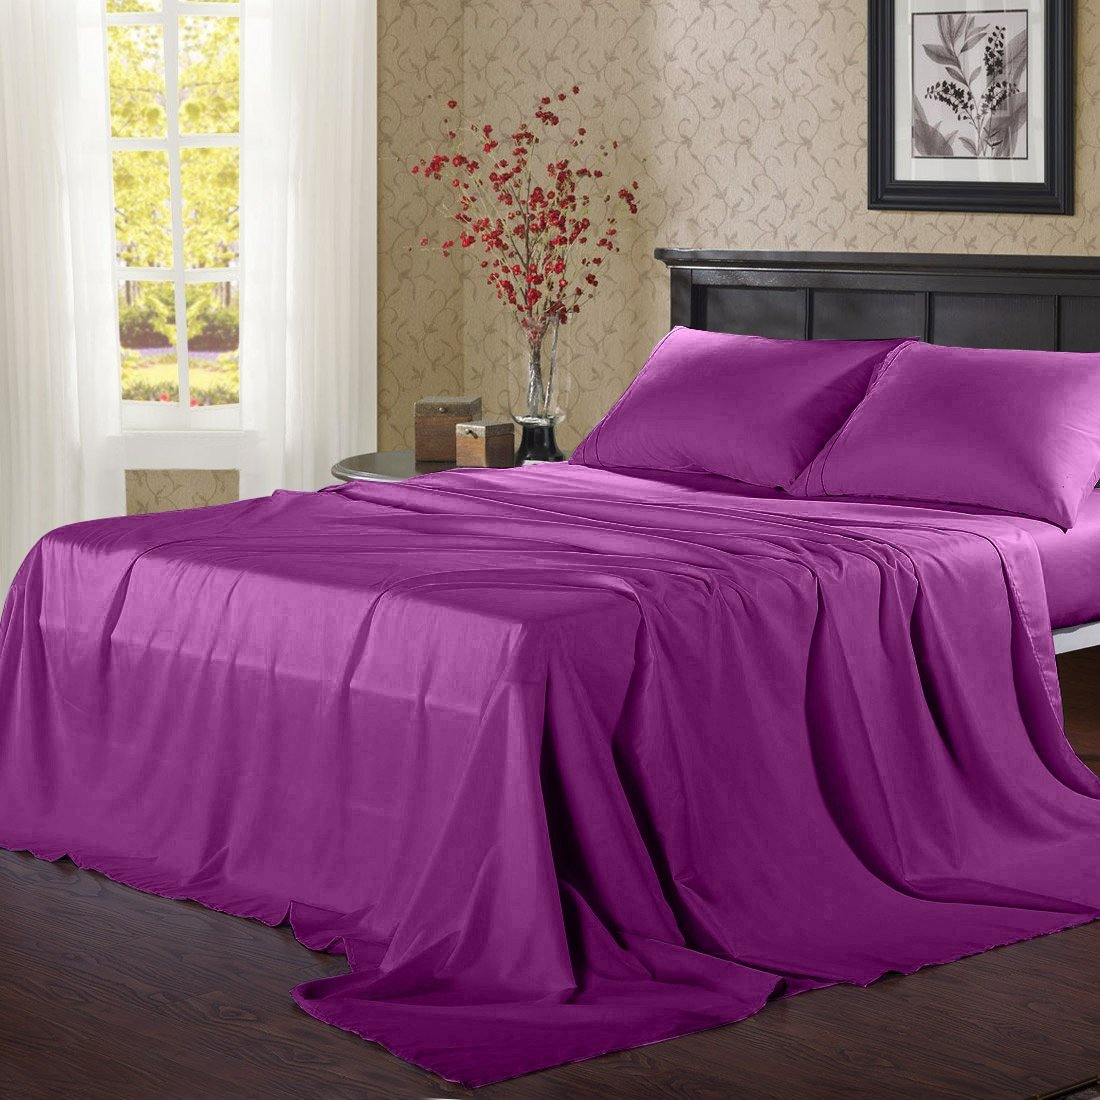 Balichun Microfiber 3 Piece Bed Sheet Set with 18-Inch Deep Pocket, Twin XL Size, Purple